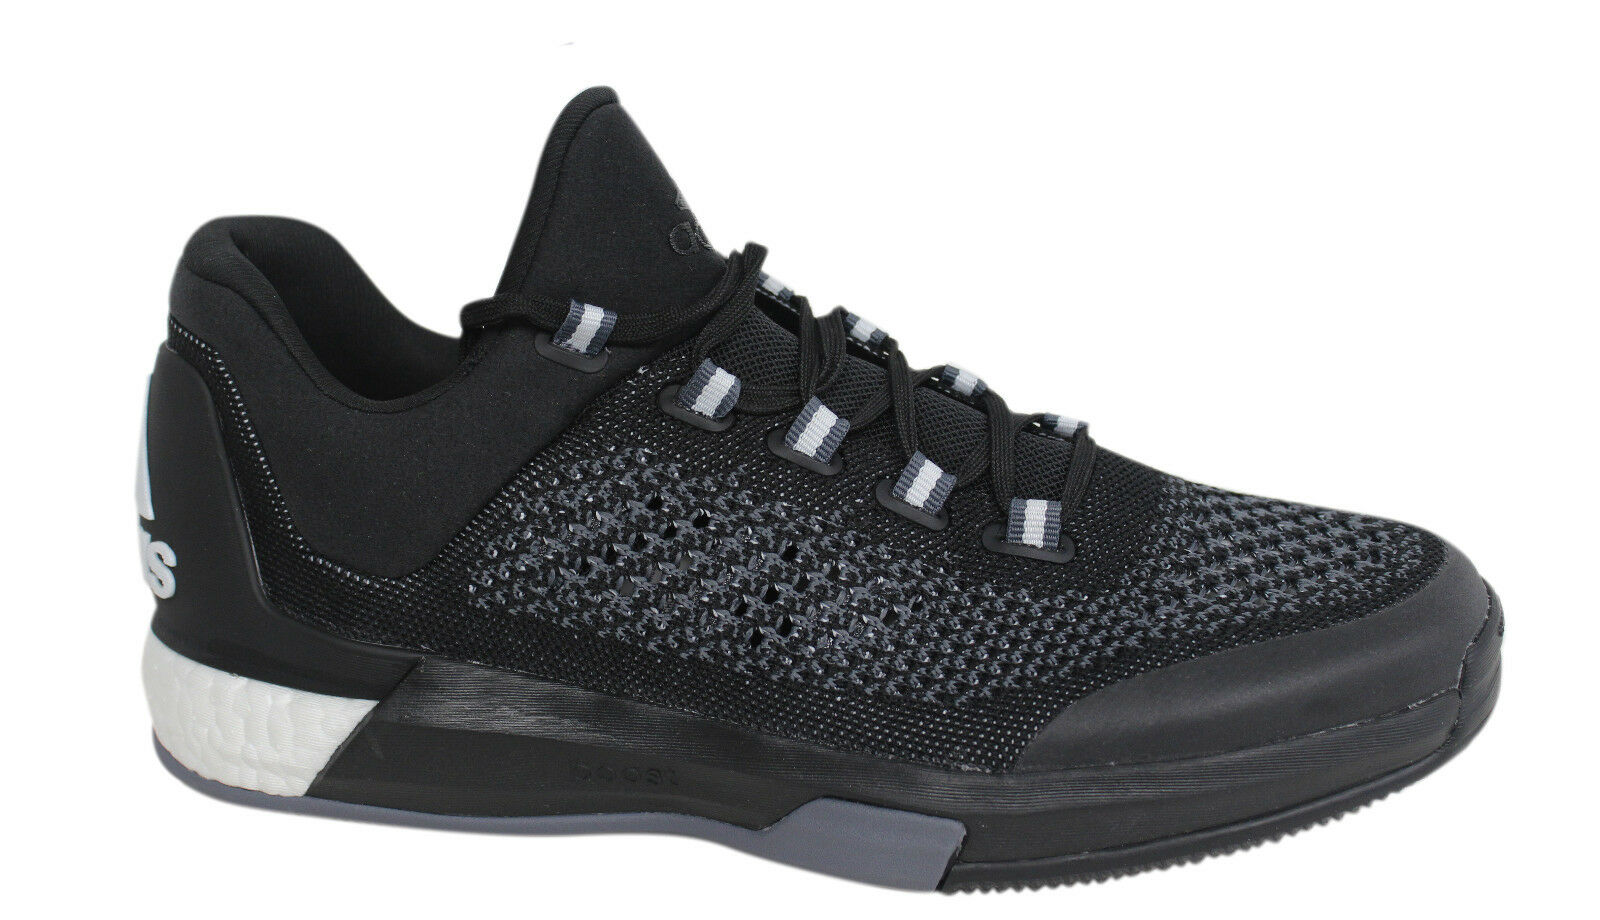 Adidas Crazylight Boost PrimeKnit Mens Trainers Basketball shoes D69704 U67